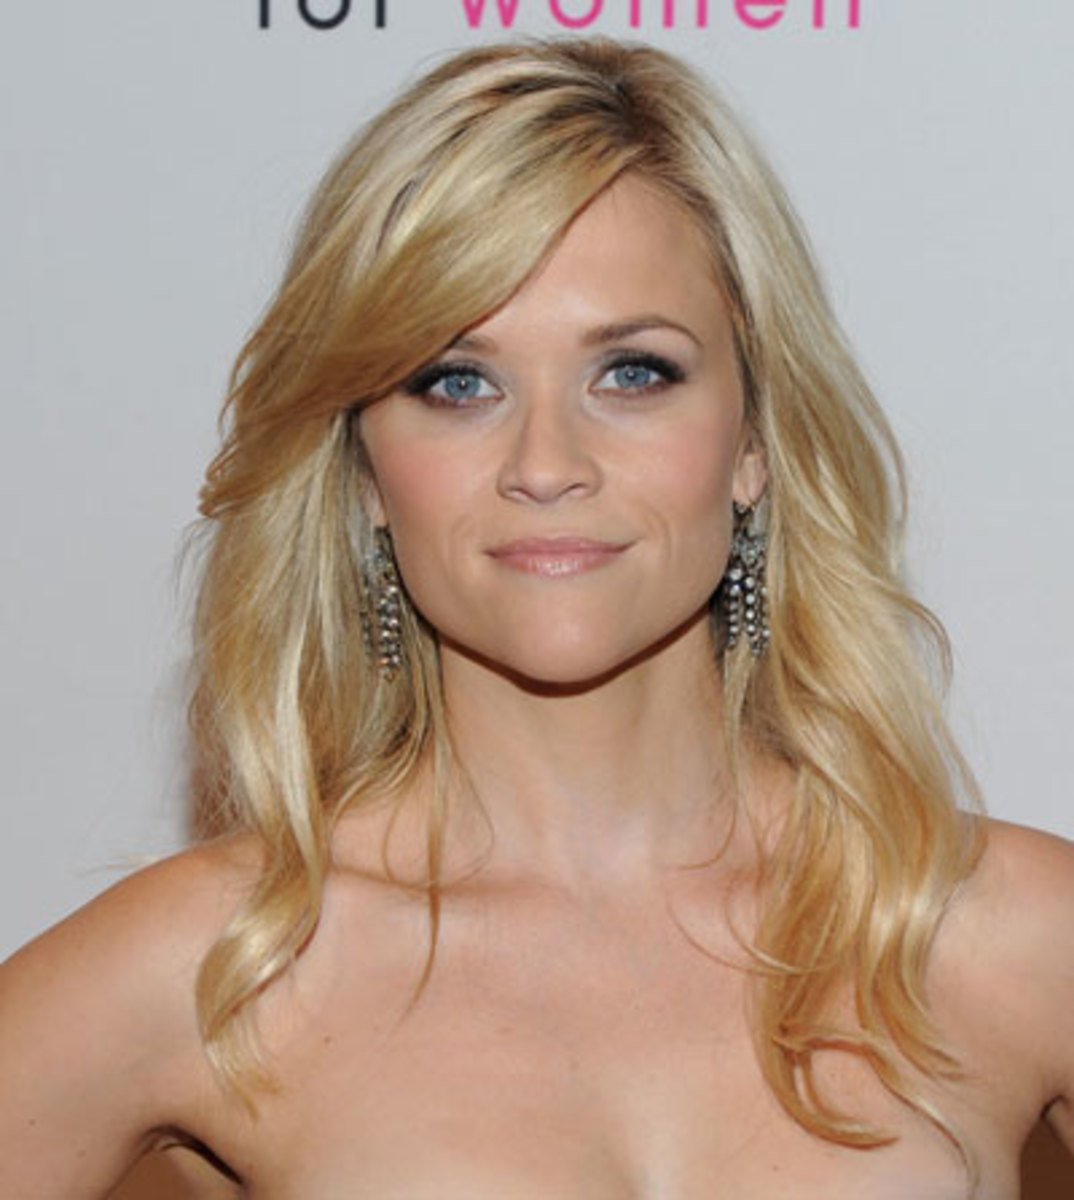 Actresses with square faces: Reese Witherspoon